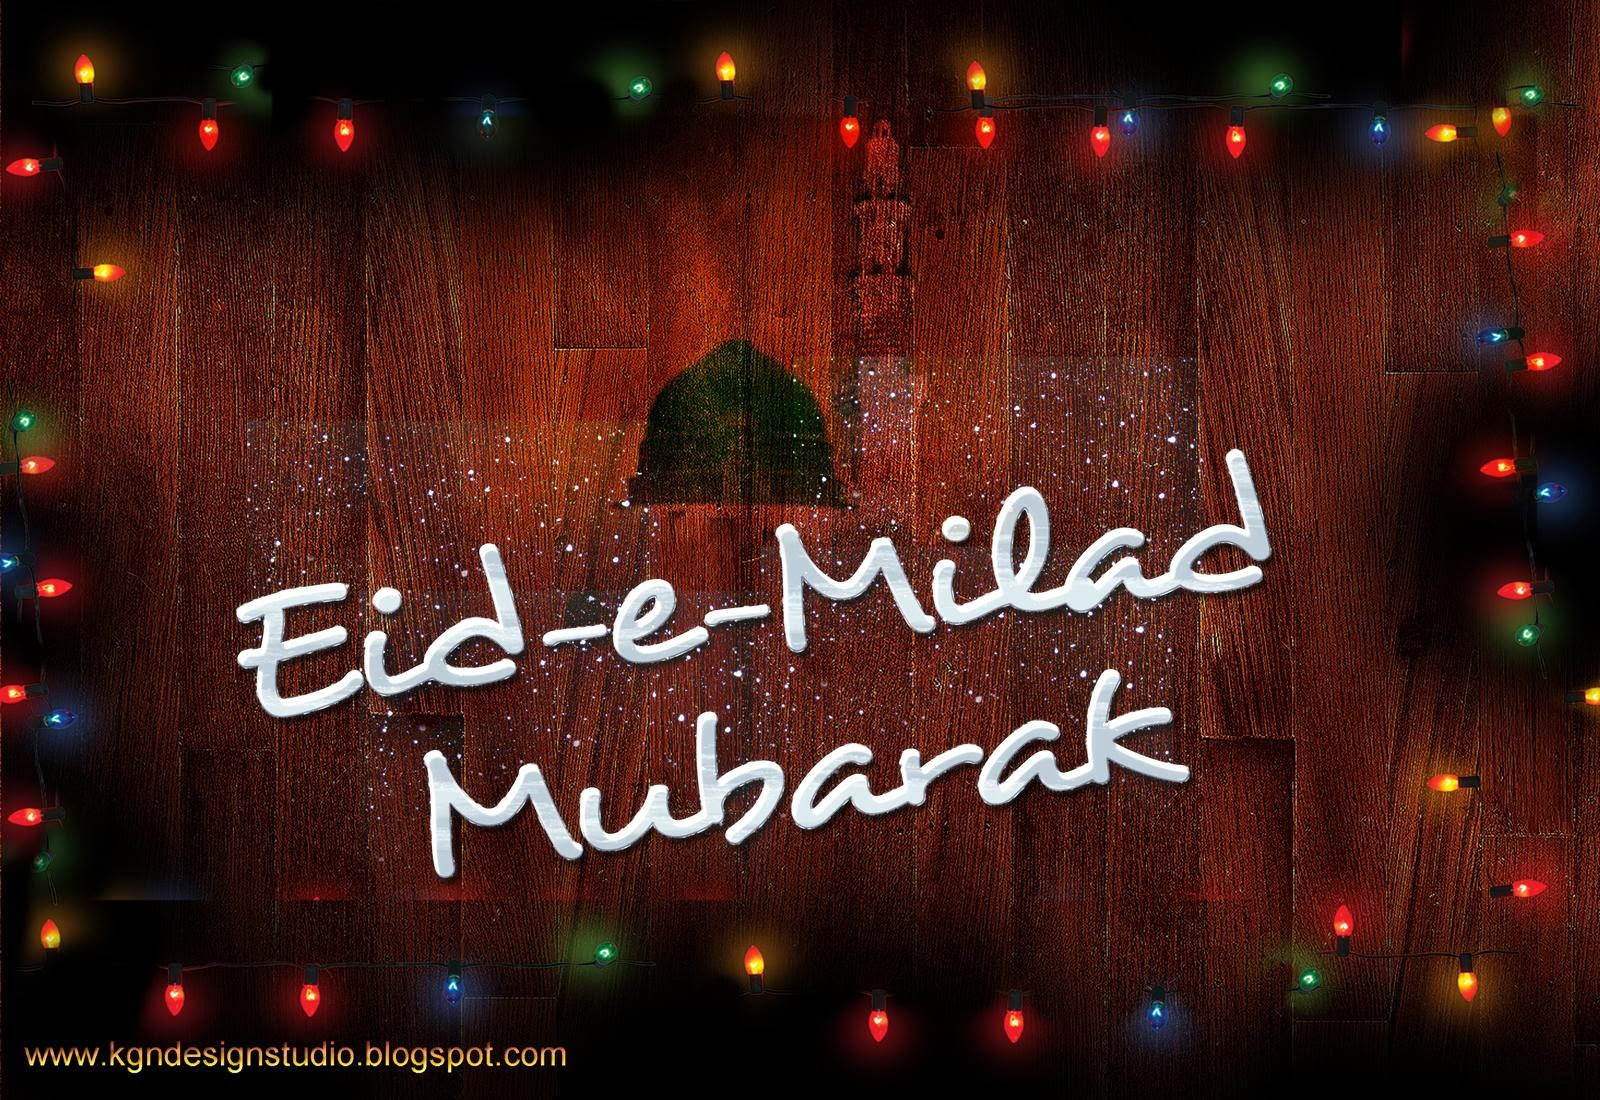 Wallpaper download eid milad un nabi - Islamic Software Wallpaper Greetings Download